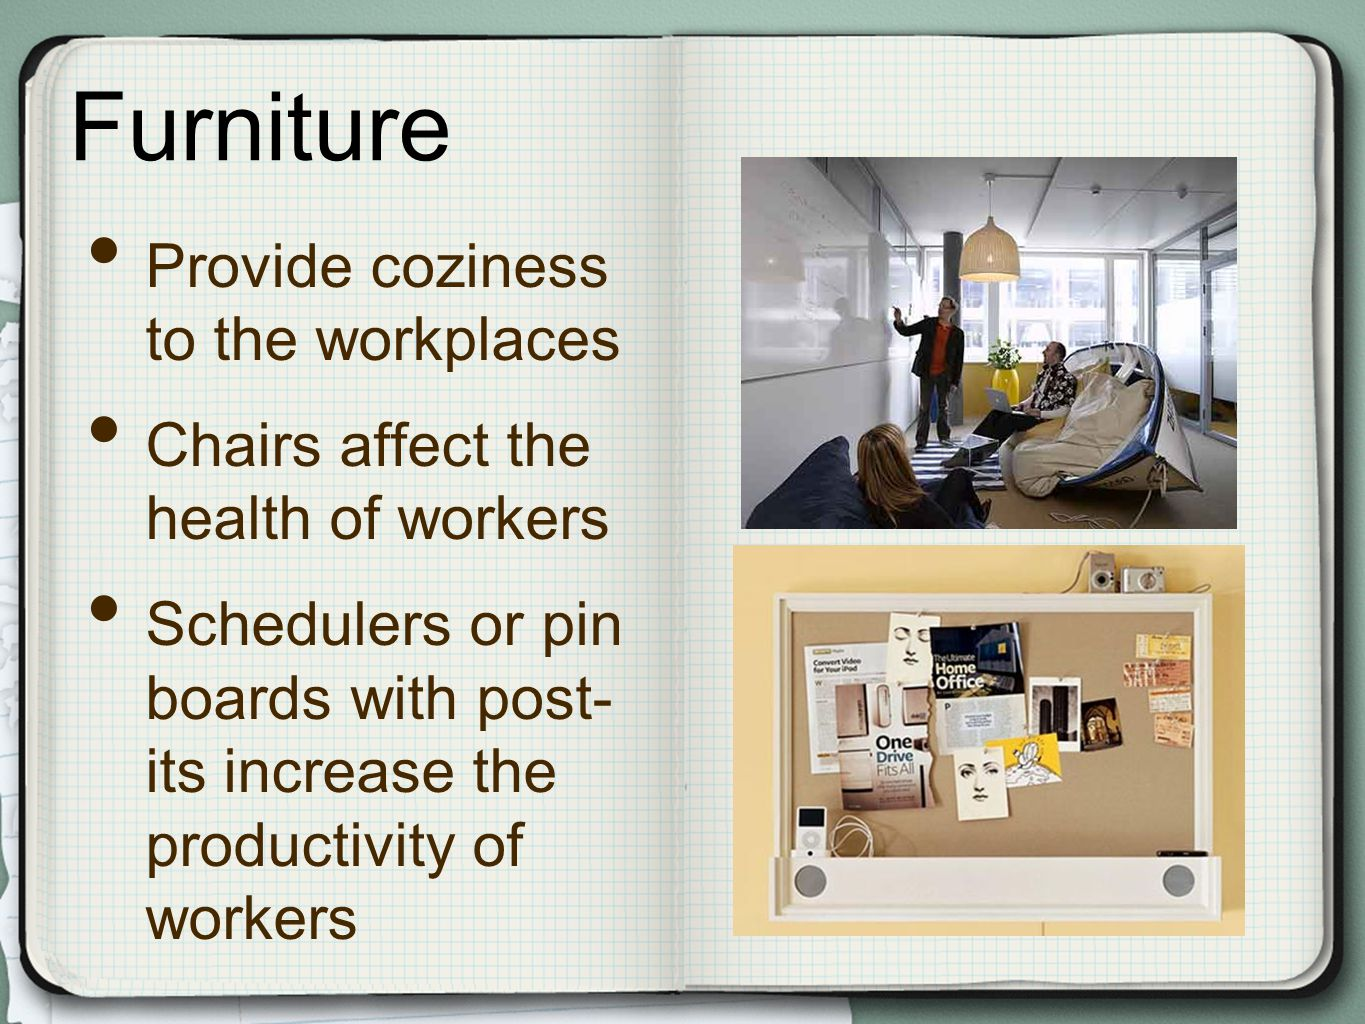 Furniture Provide coziness to the workplaces Chairs affect the health of workers Schedulers or pin boards with post- its increase the productivity of workers